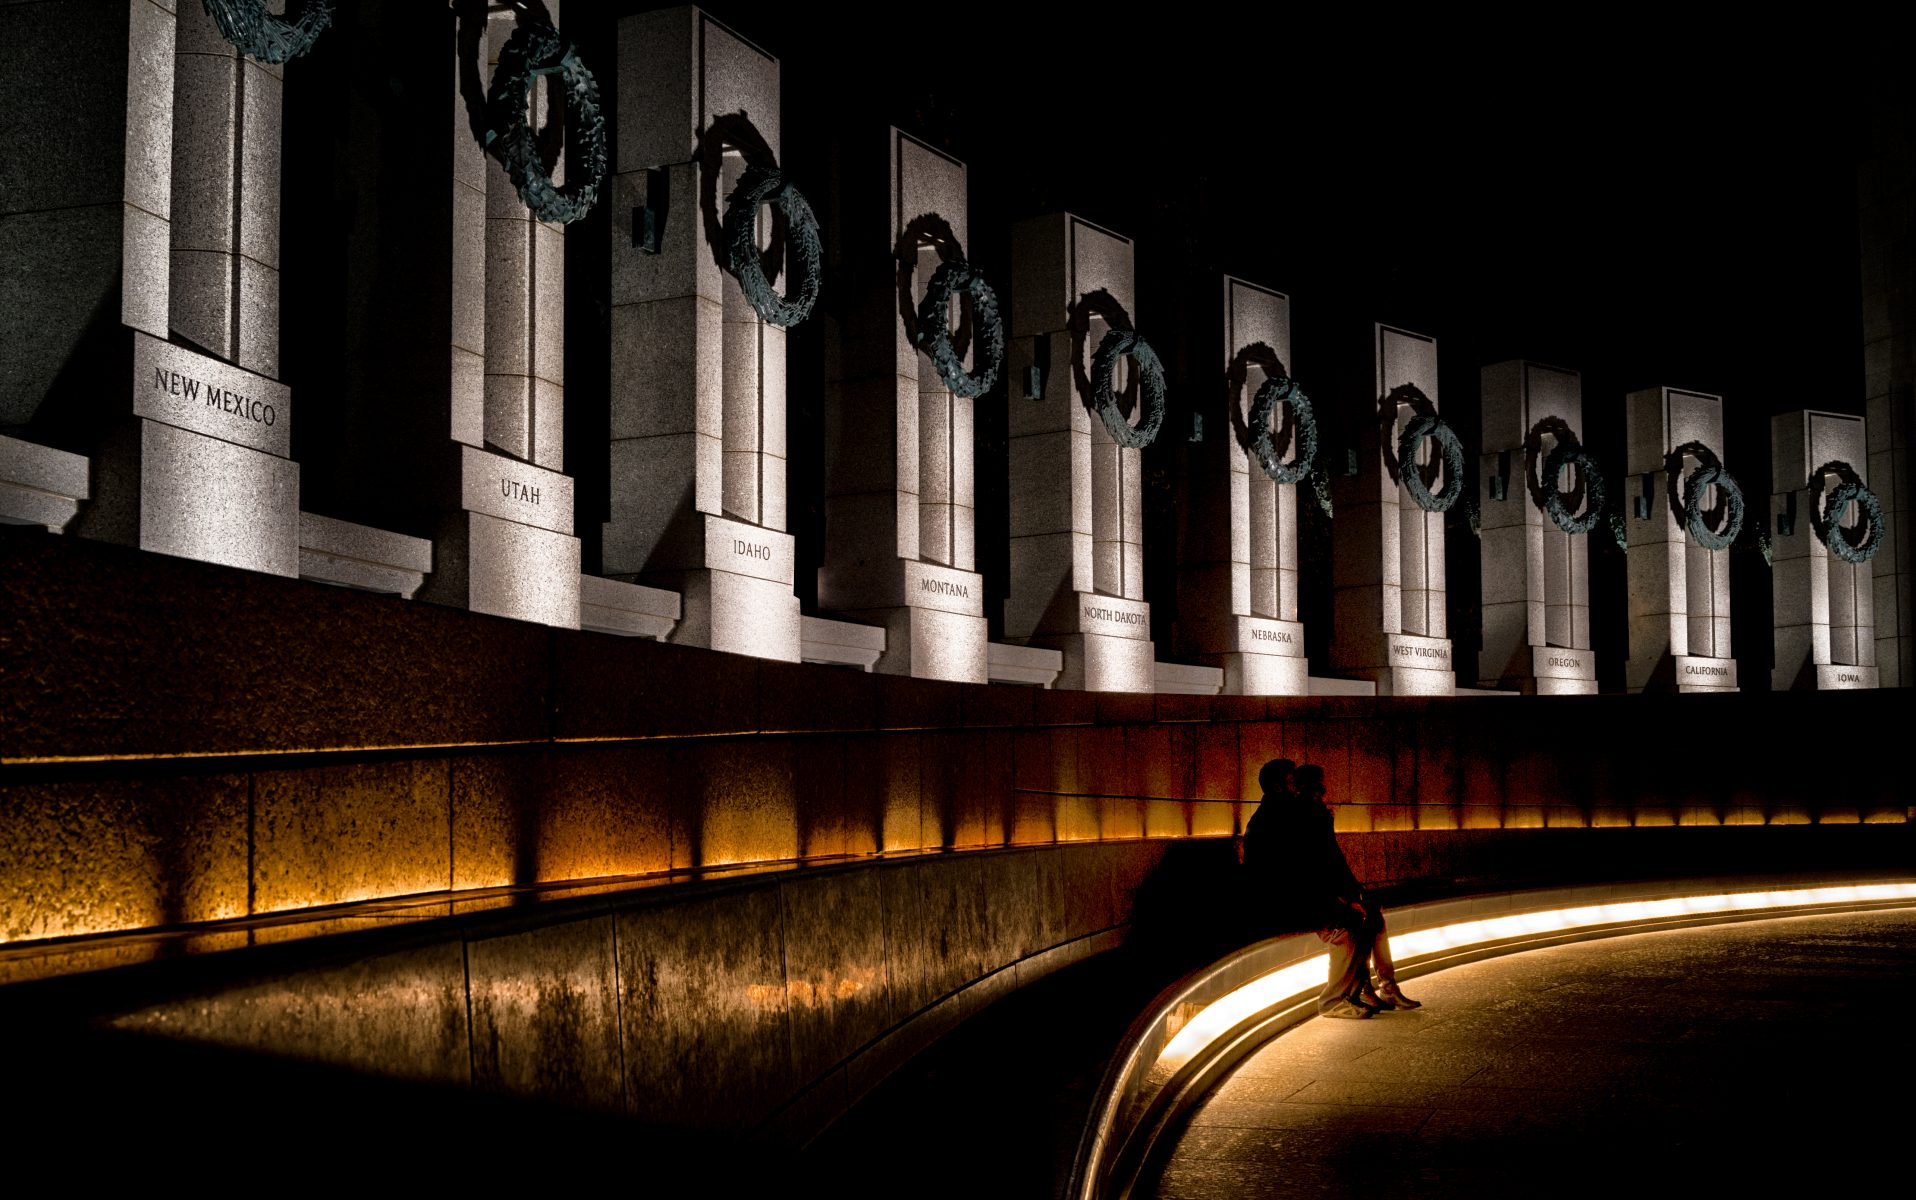 Nightime at the Memorial